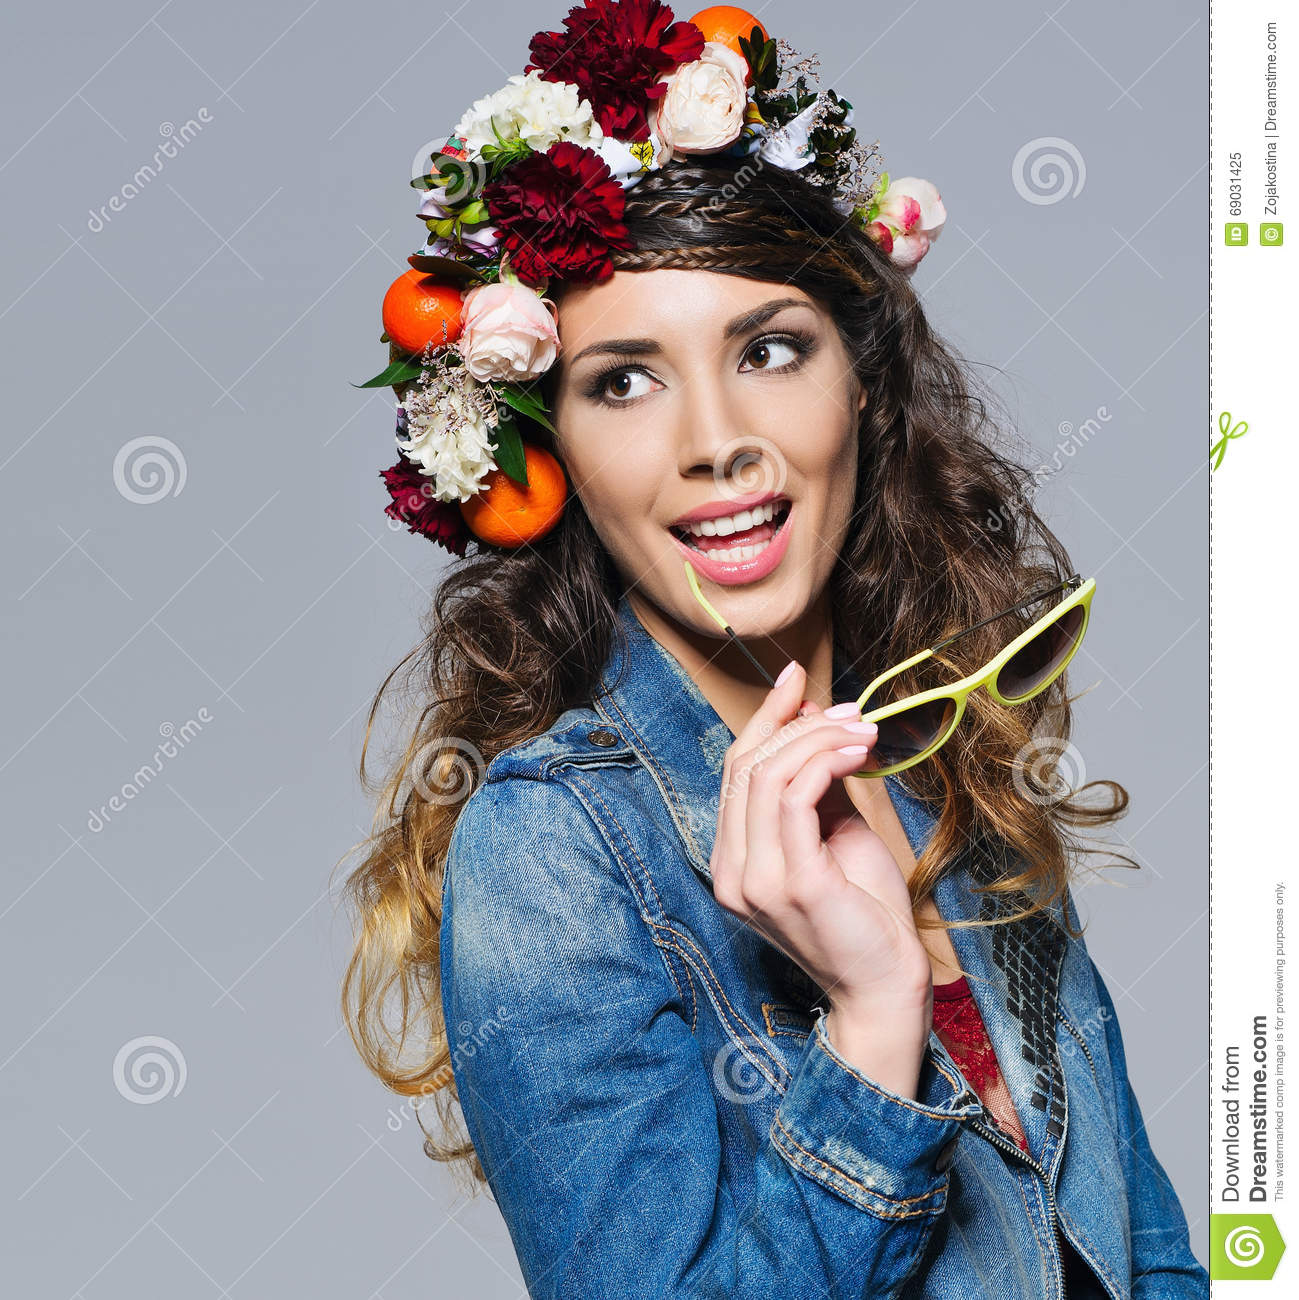 Beautiful woman in flower crown holding sunglasses stock image fashion portrait of a beautiful young woman with gipsy hairstyle wearing bright flower crown jeans jacket and trendy yellow sunglasses smiling happily izmirmasajfo